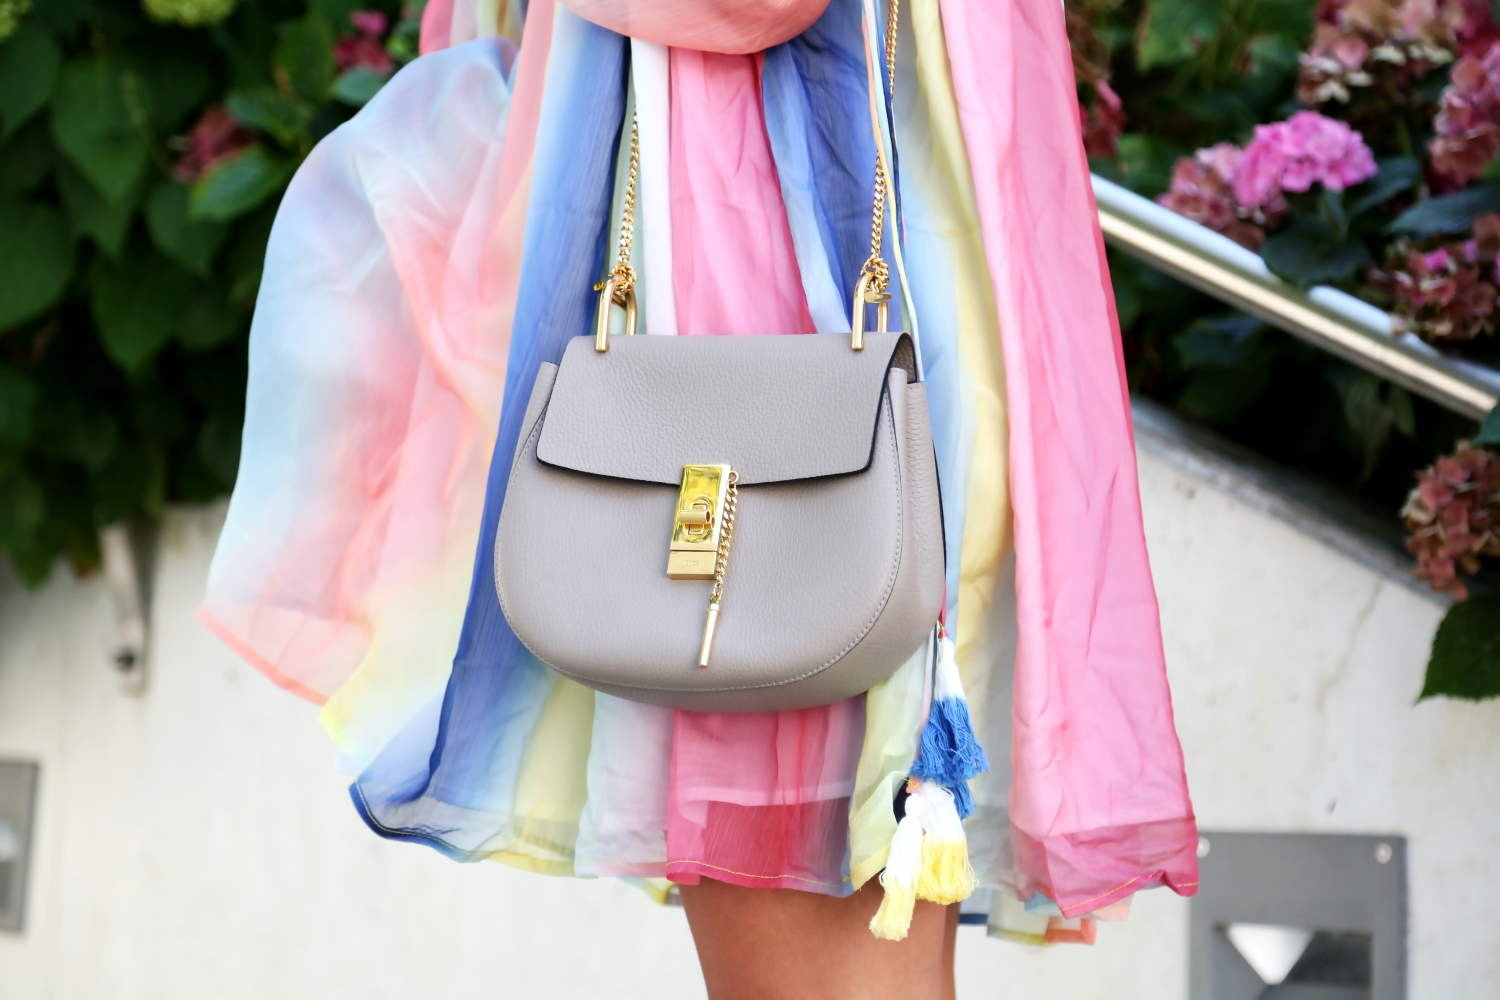 outfit-details-chloe-drew-bag-dress